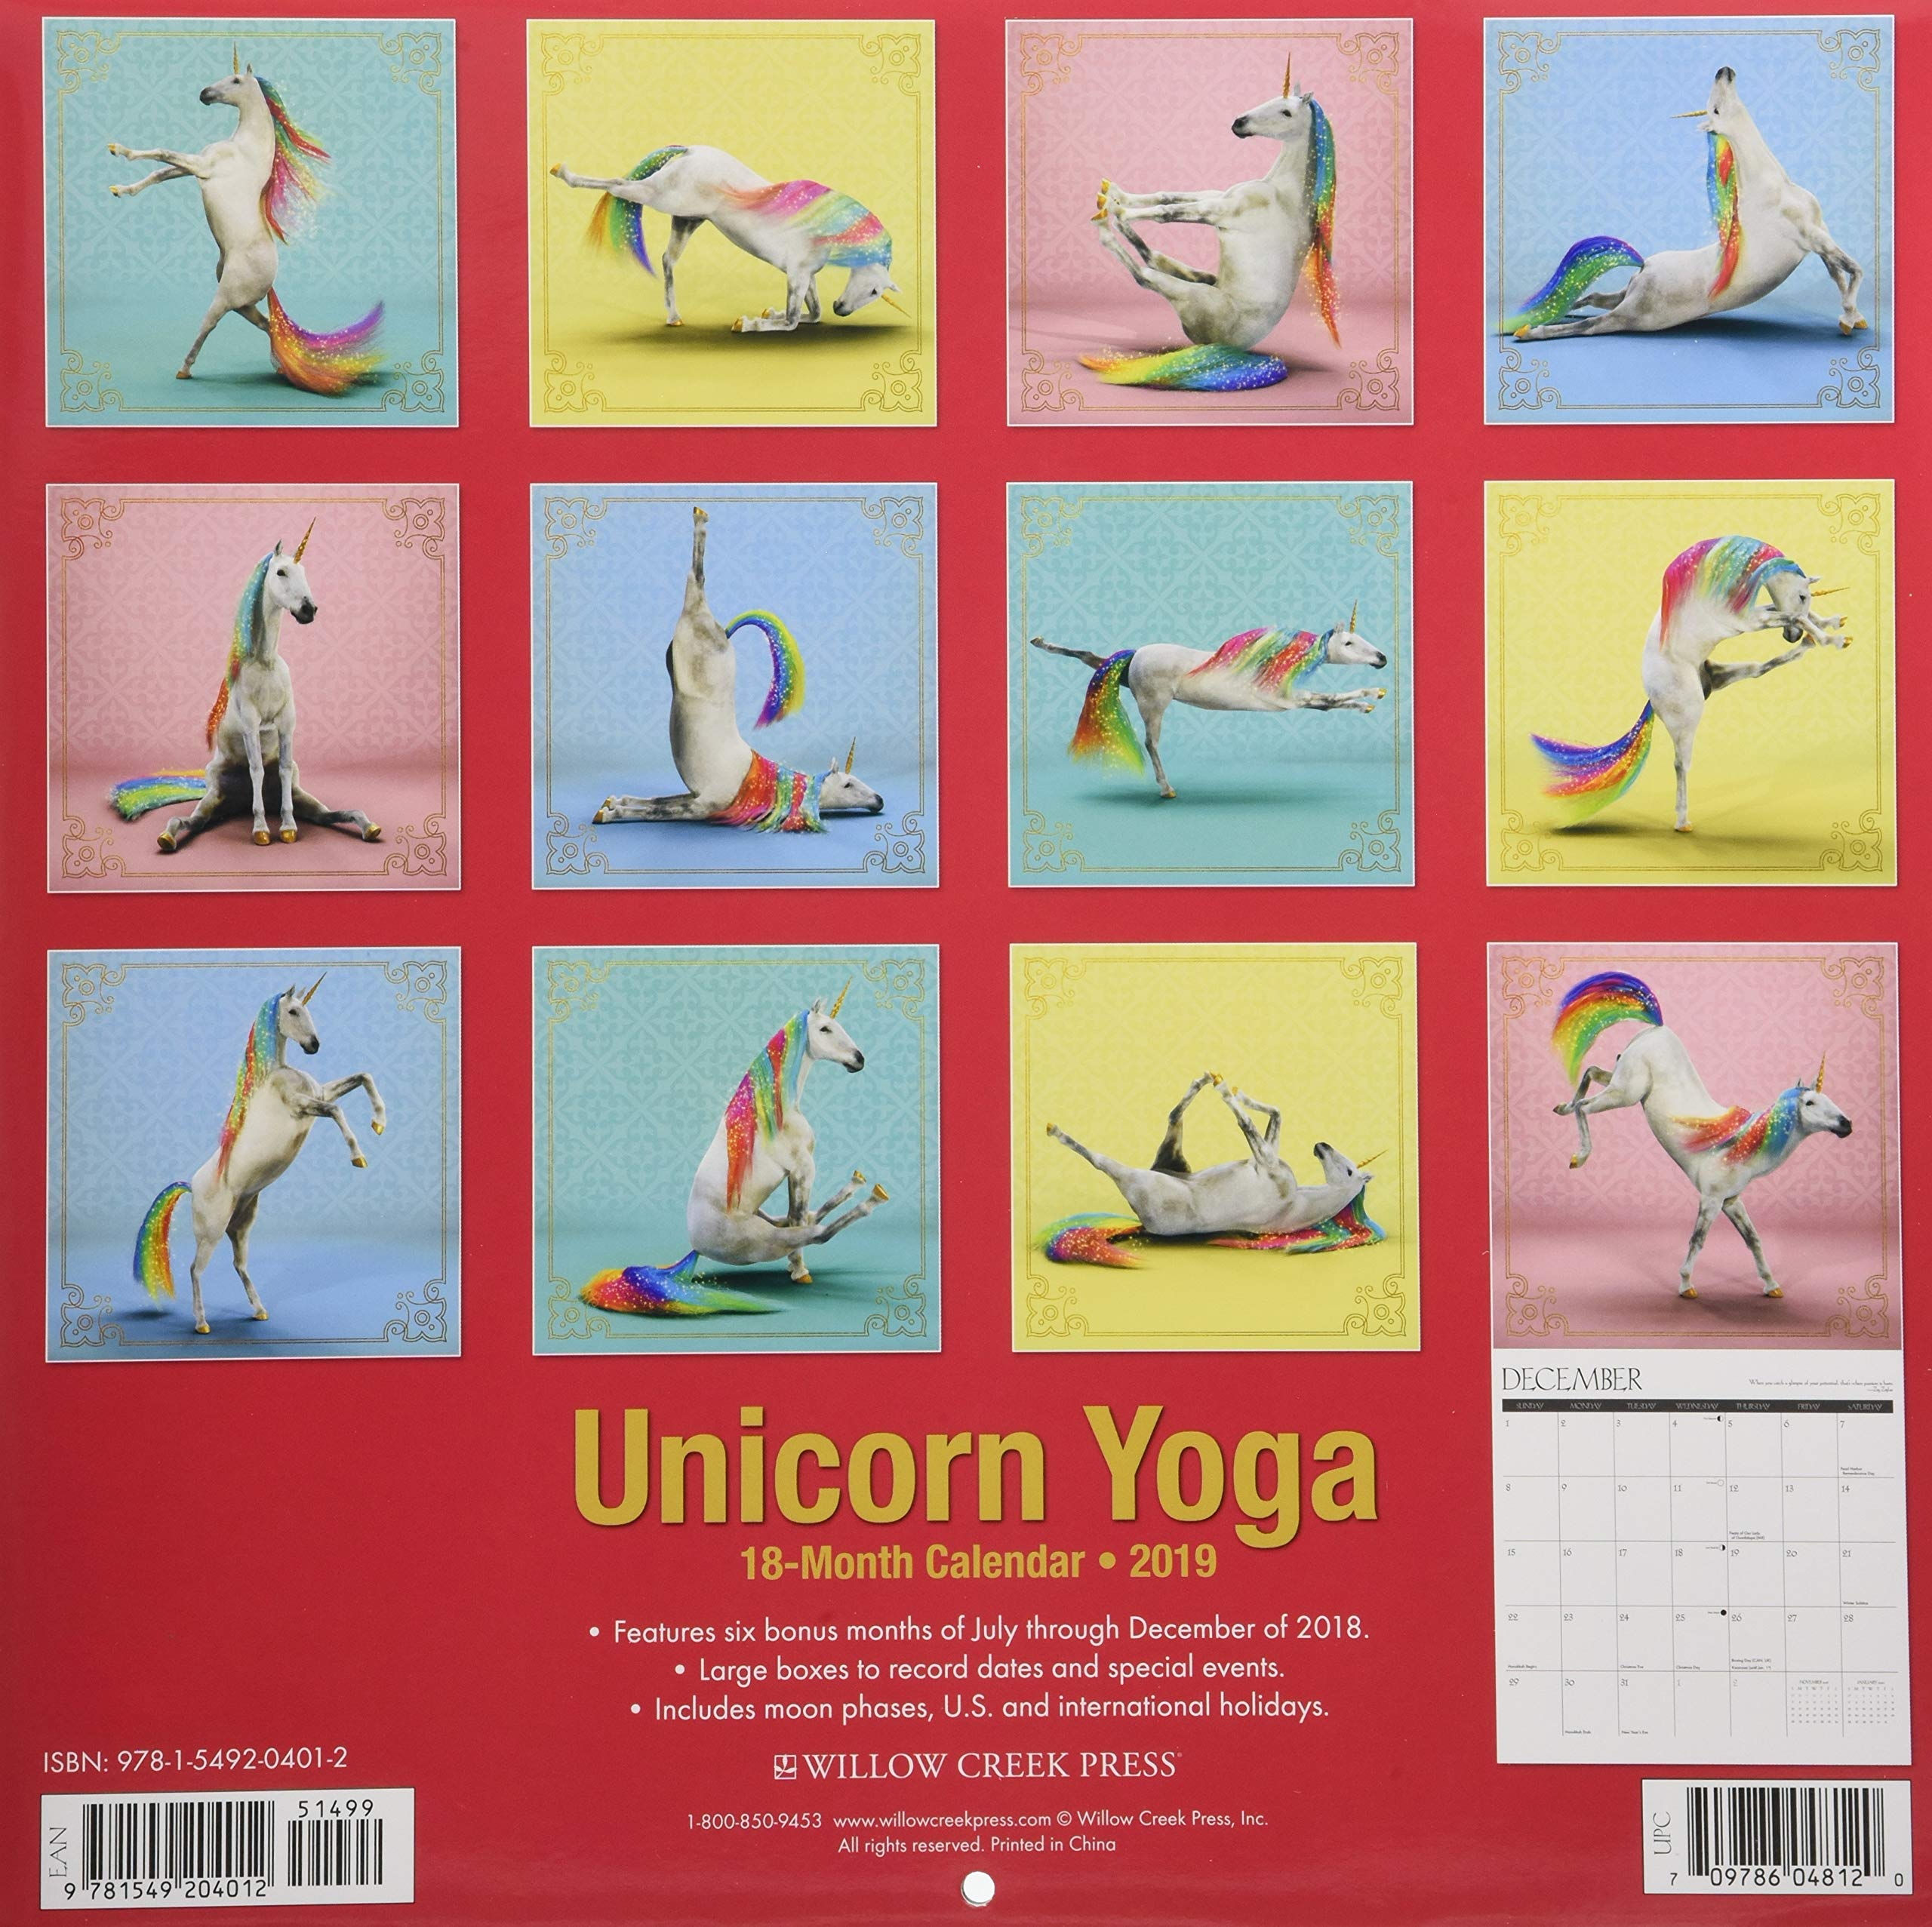 Unicorn Yoga 2019 Wall Calendar: Amazon.es: Willow Creek ...